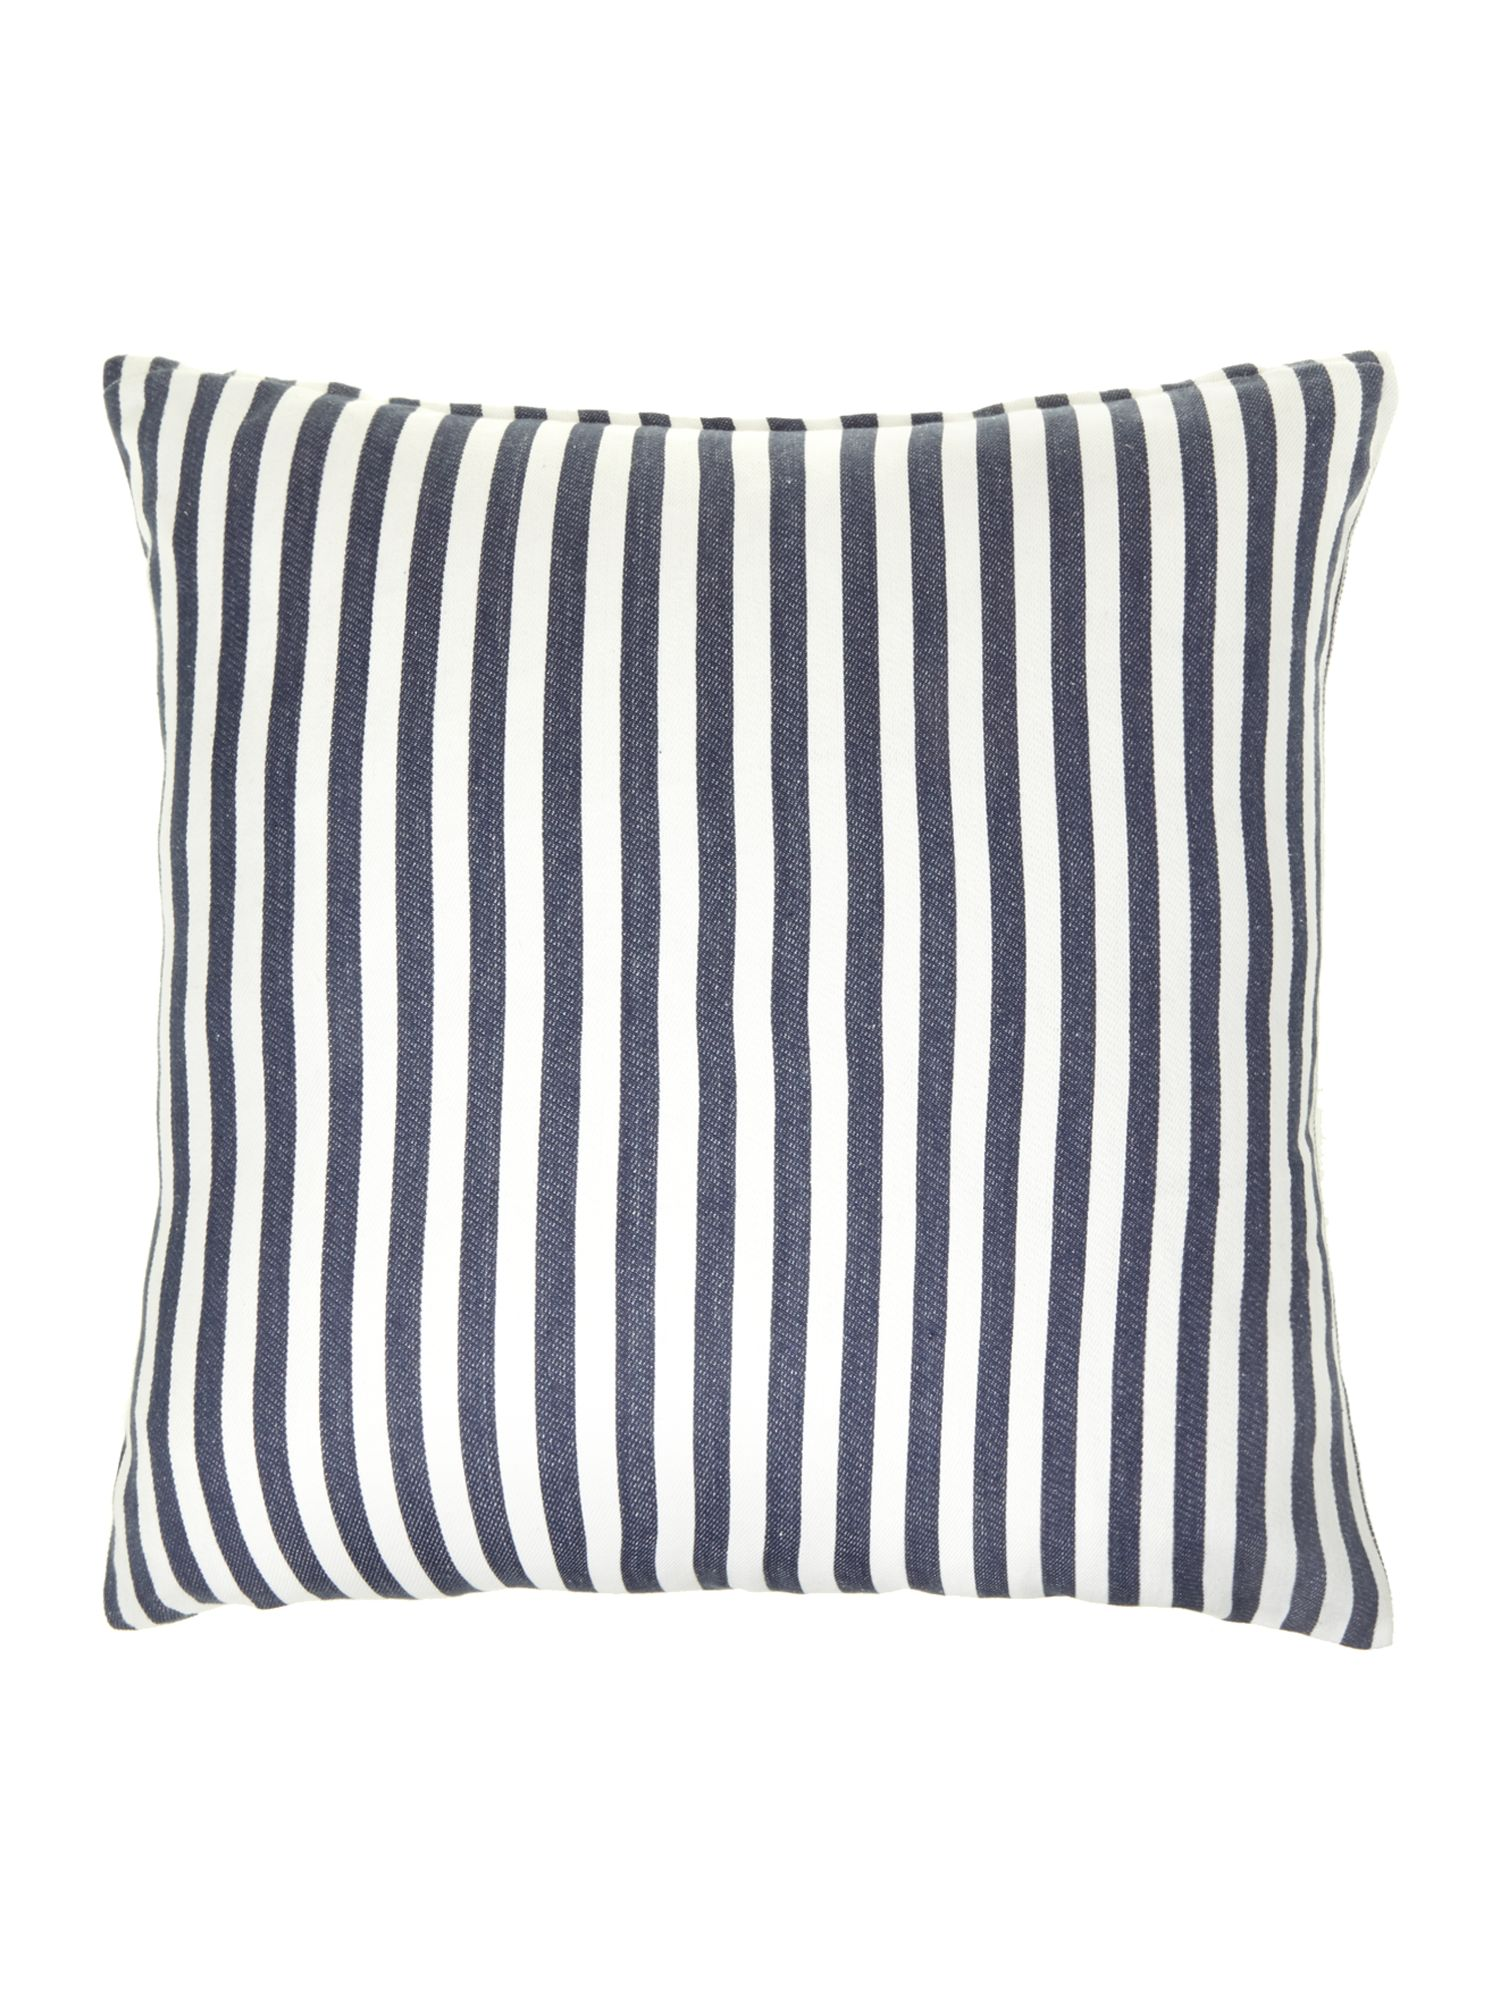 Navy woven stripe cushion